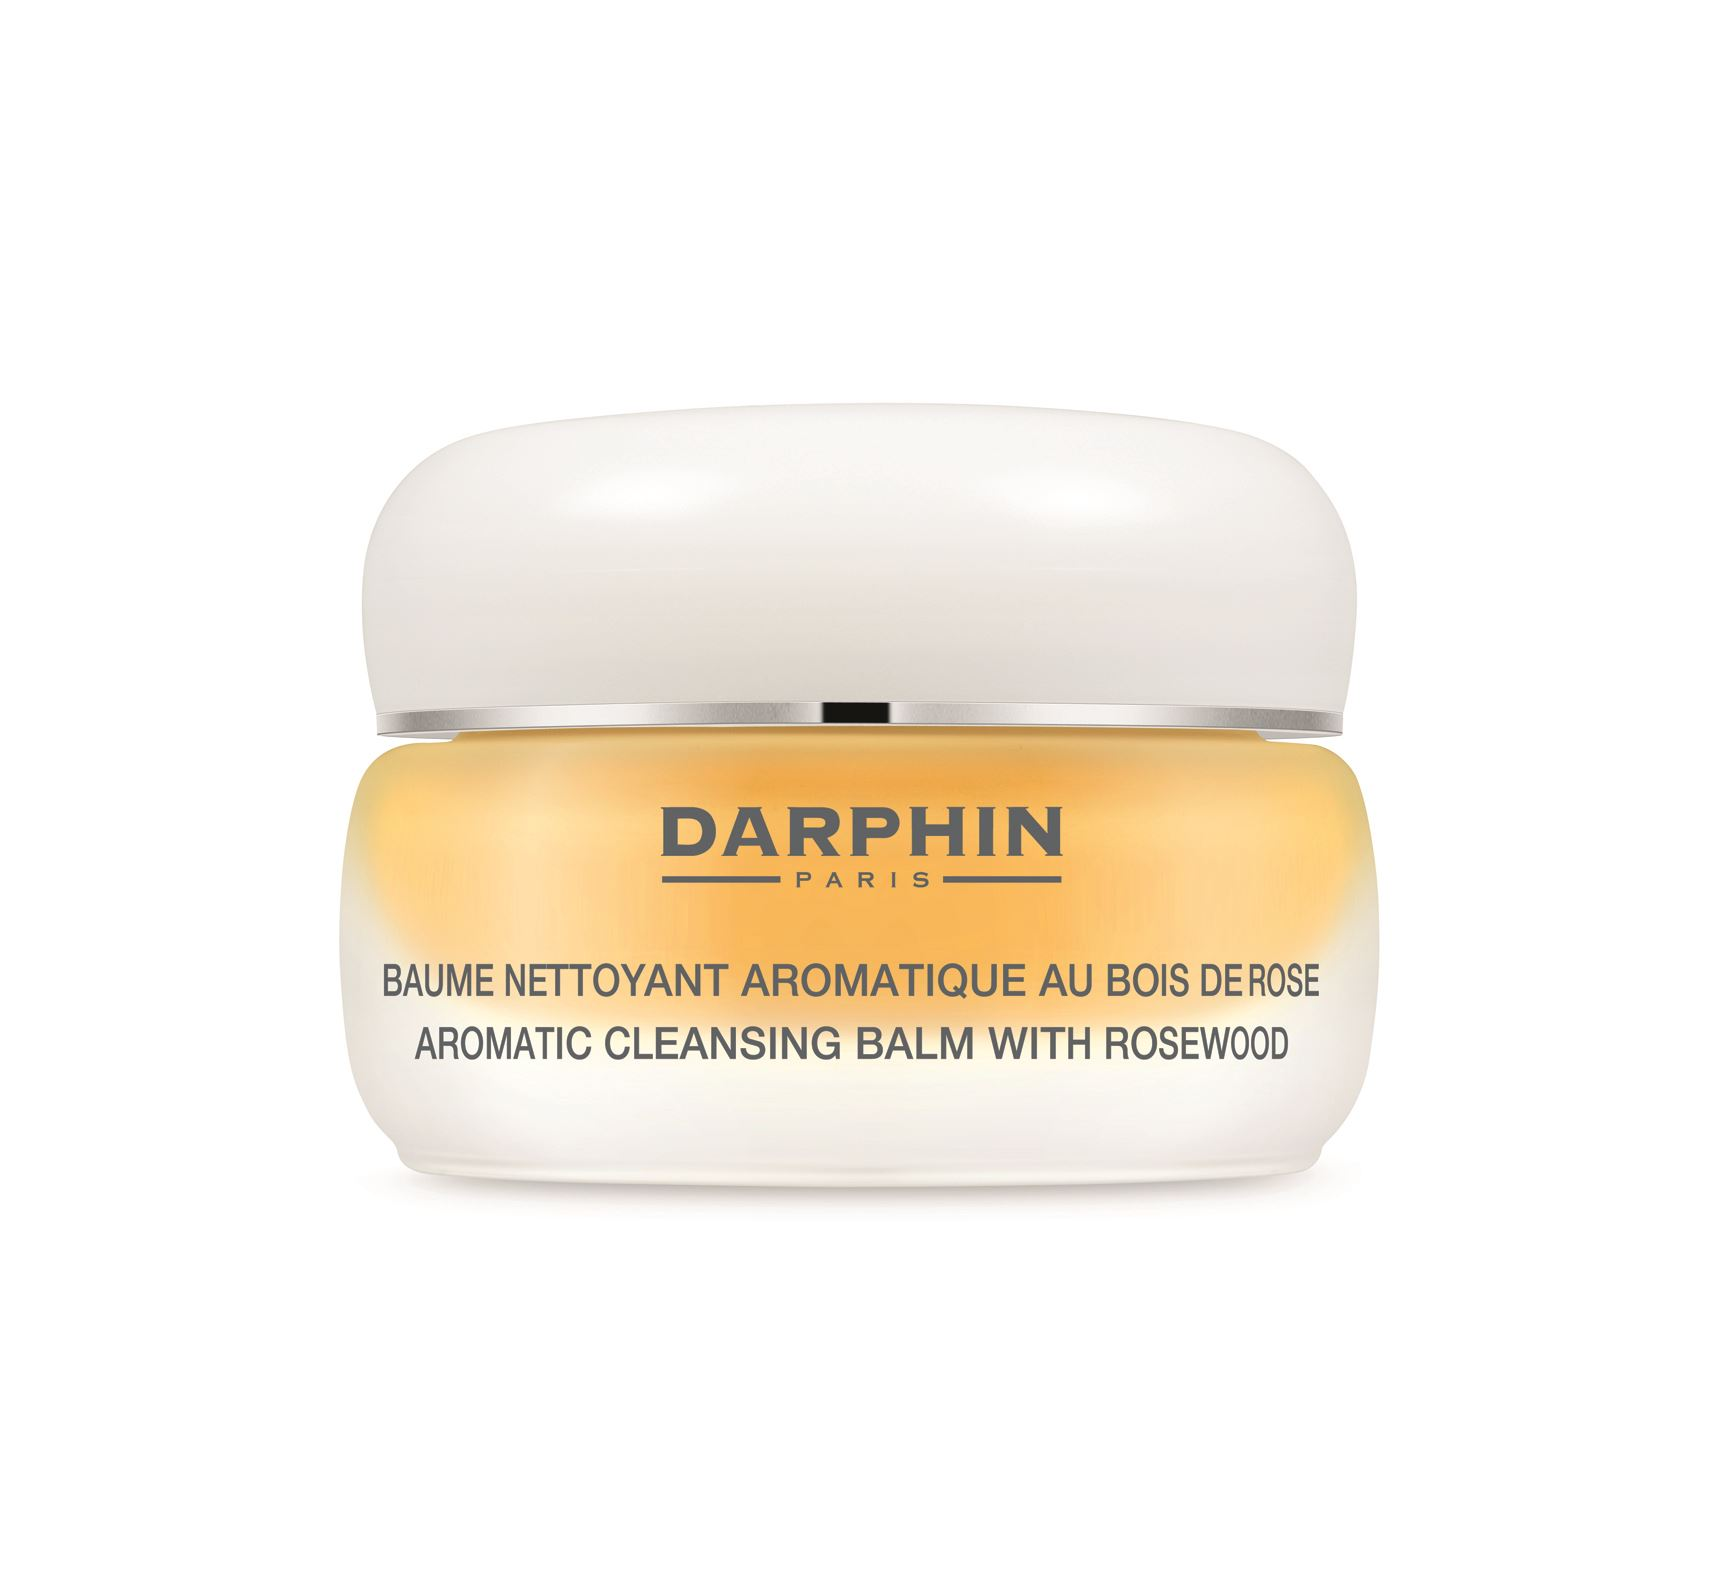 DARPHIN Aromatic Cleansing Balm with Rosewood 40ml